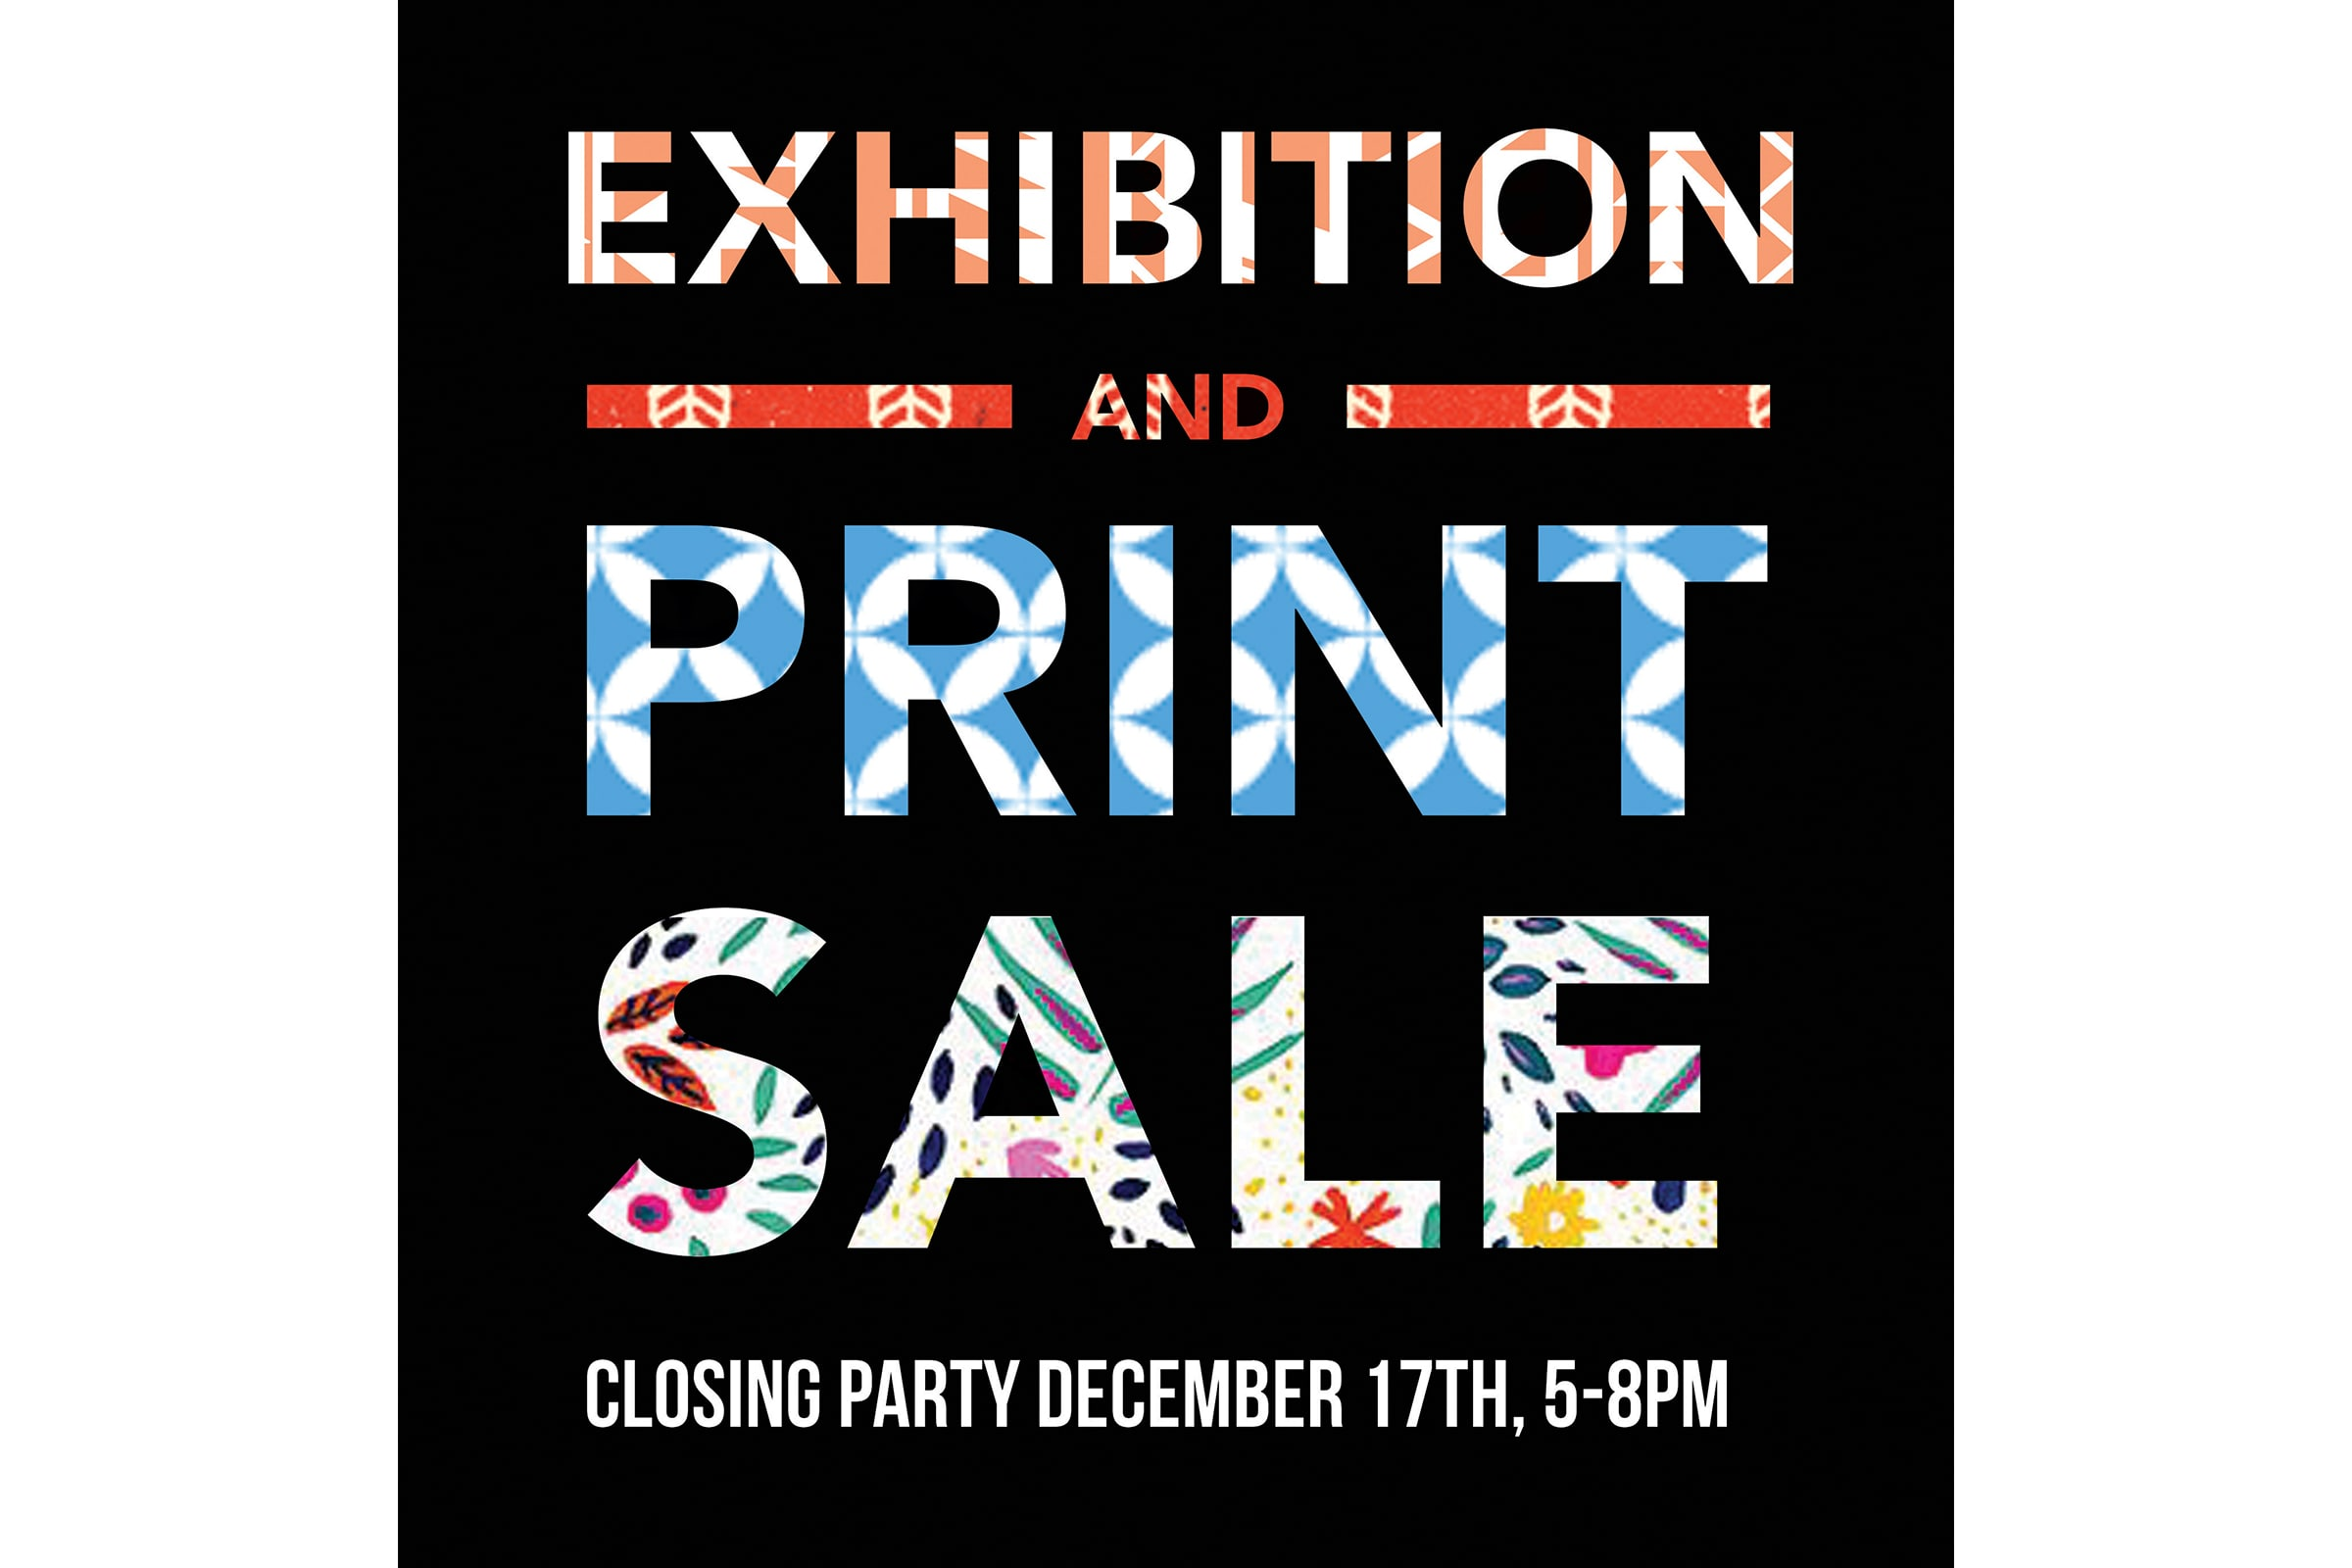 Exhibition and Holiday Print Sale